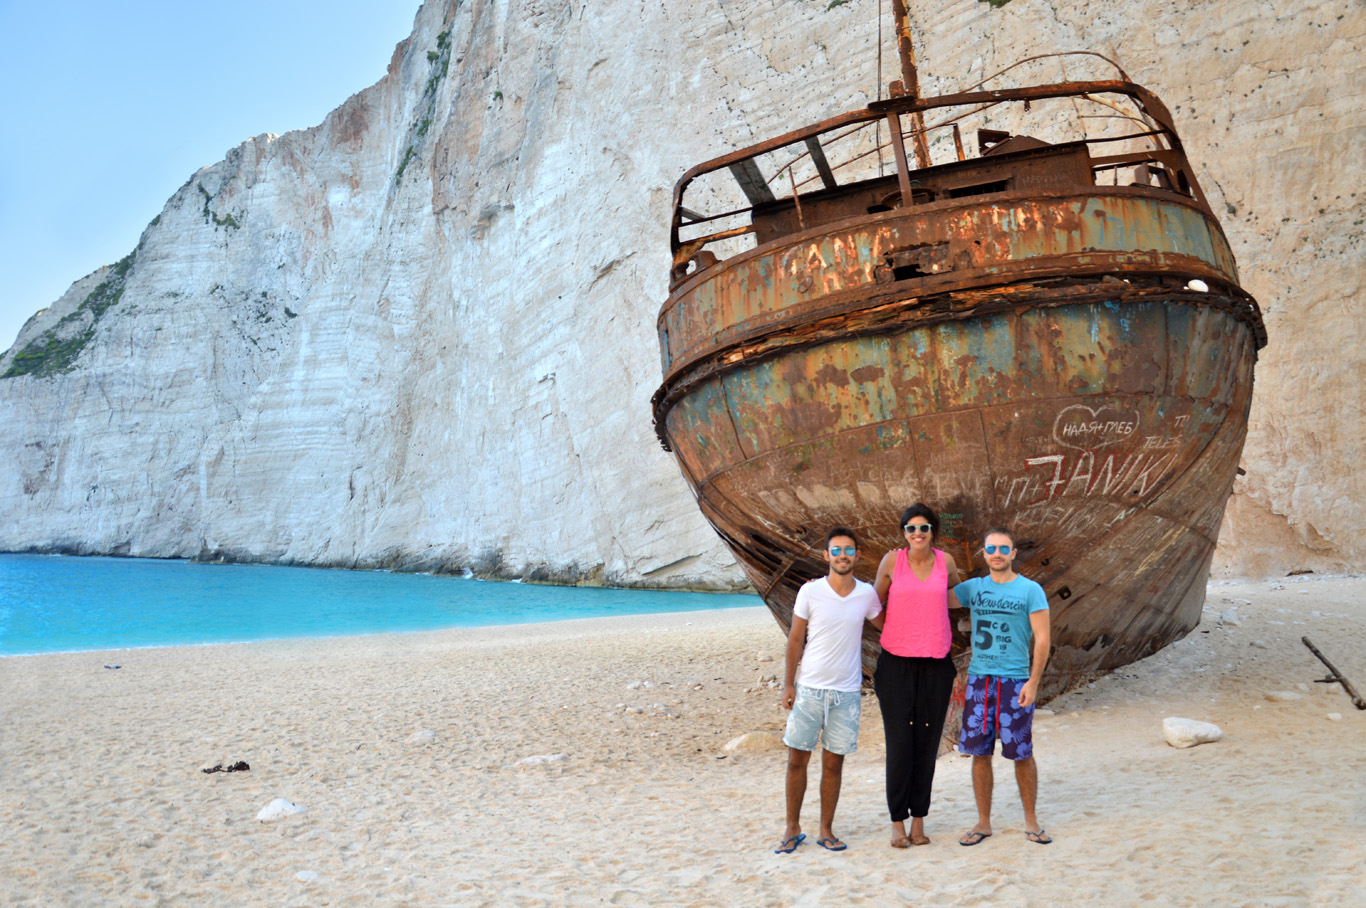 Unusual sight - empty Navagio beach - no tourists, only the shipwreck and us :)